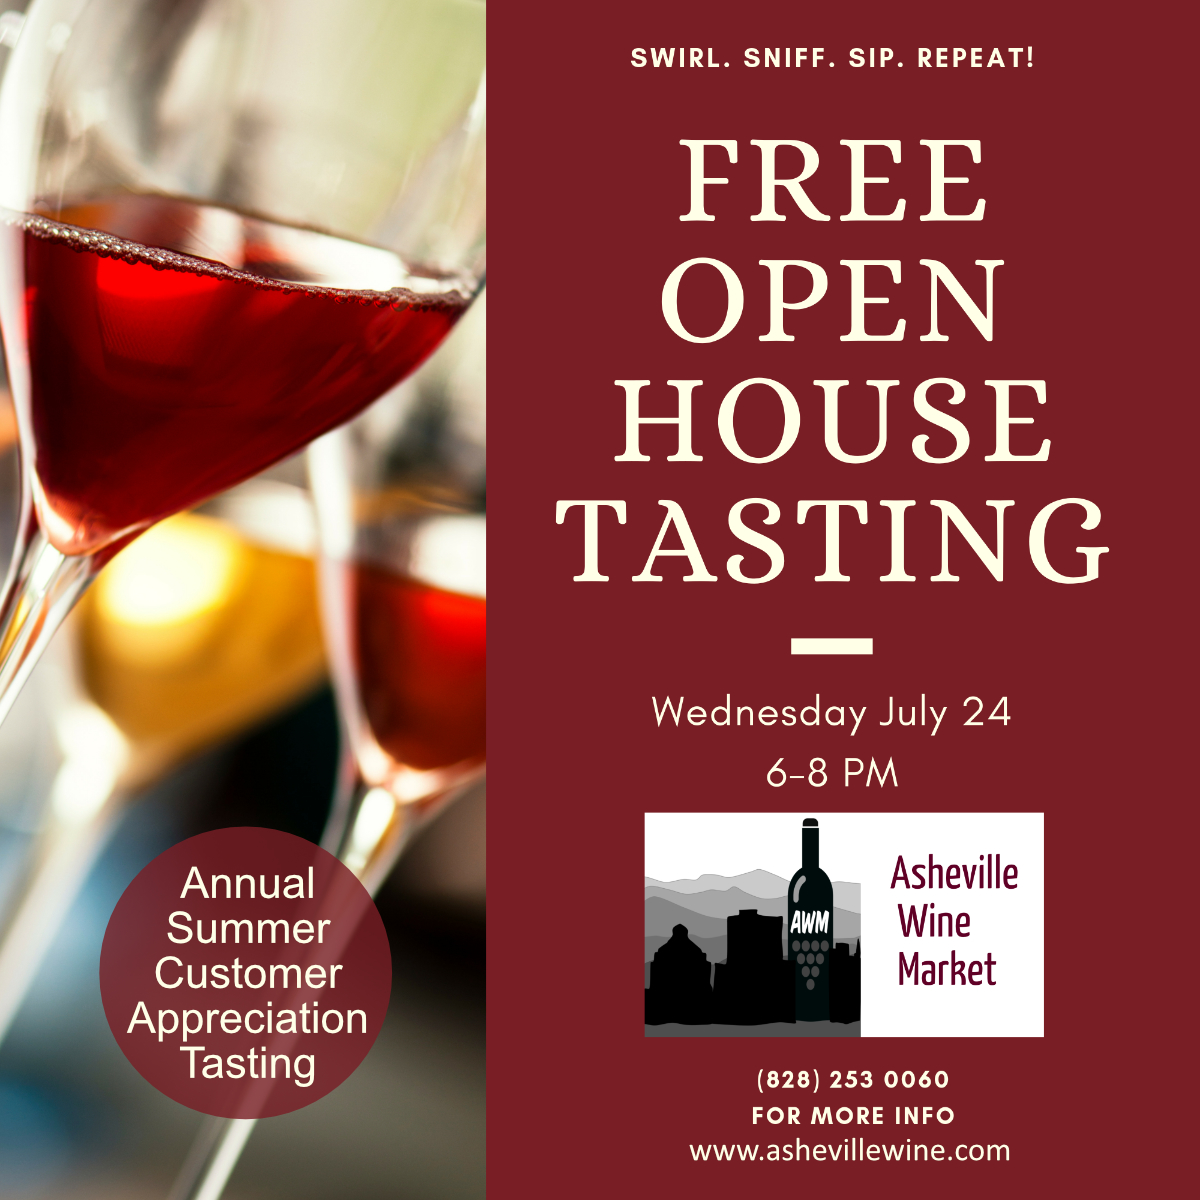 Asheville's best free, annual open house tasting